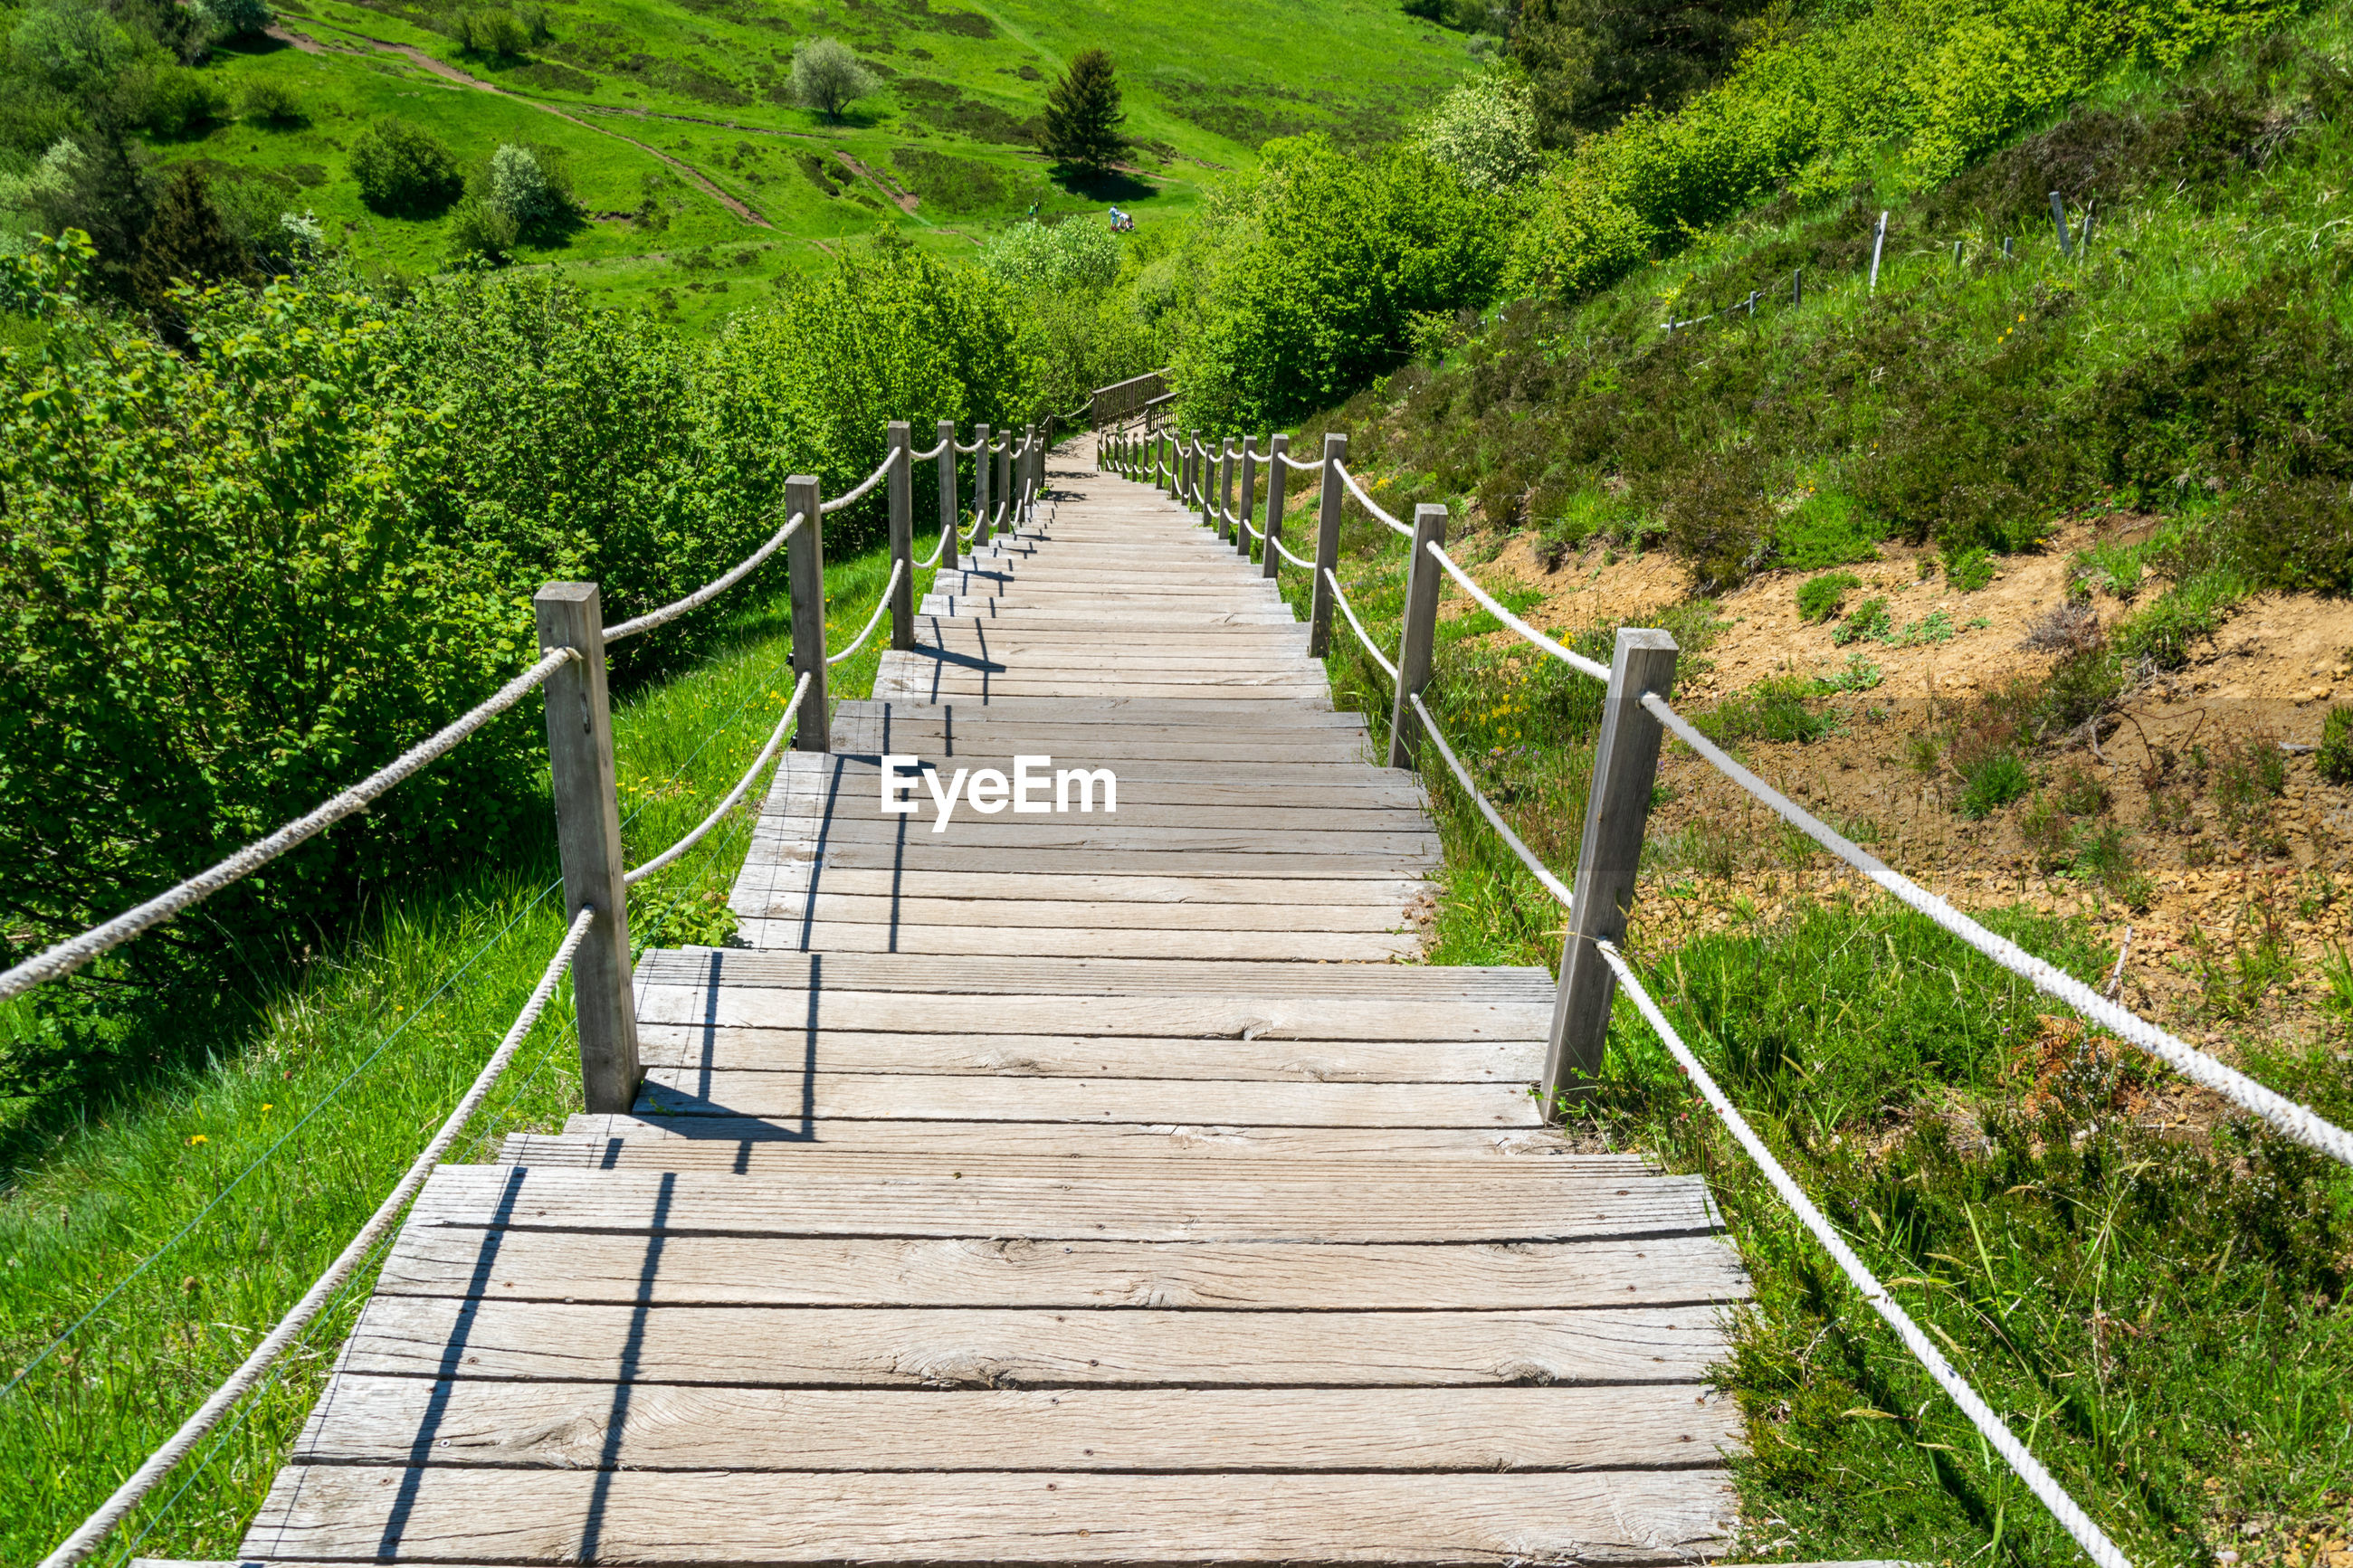 FOOTPATH LEADING TO WOODEN STRUCTURE